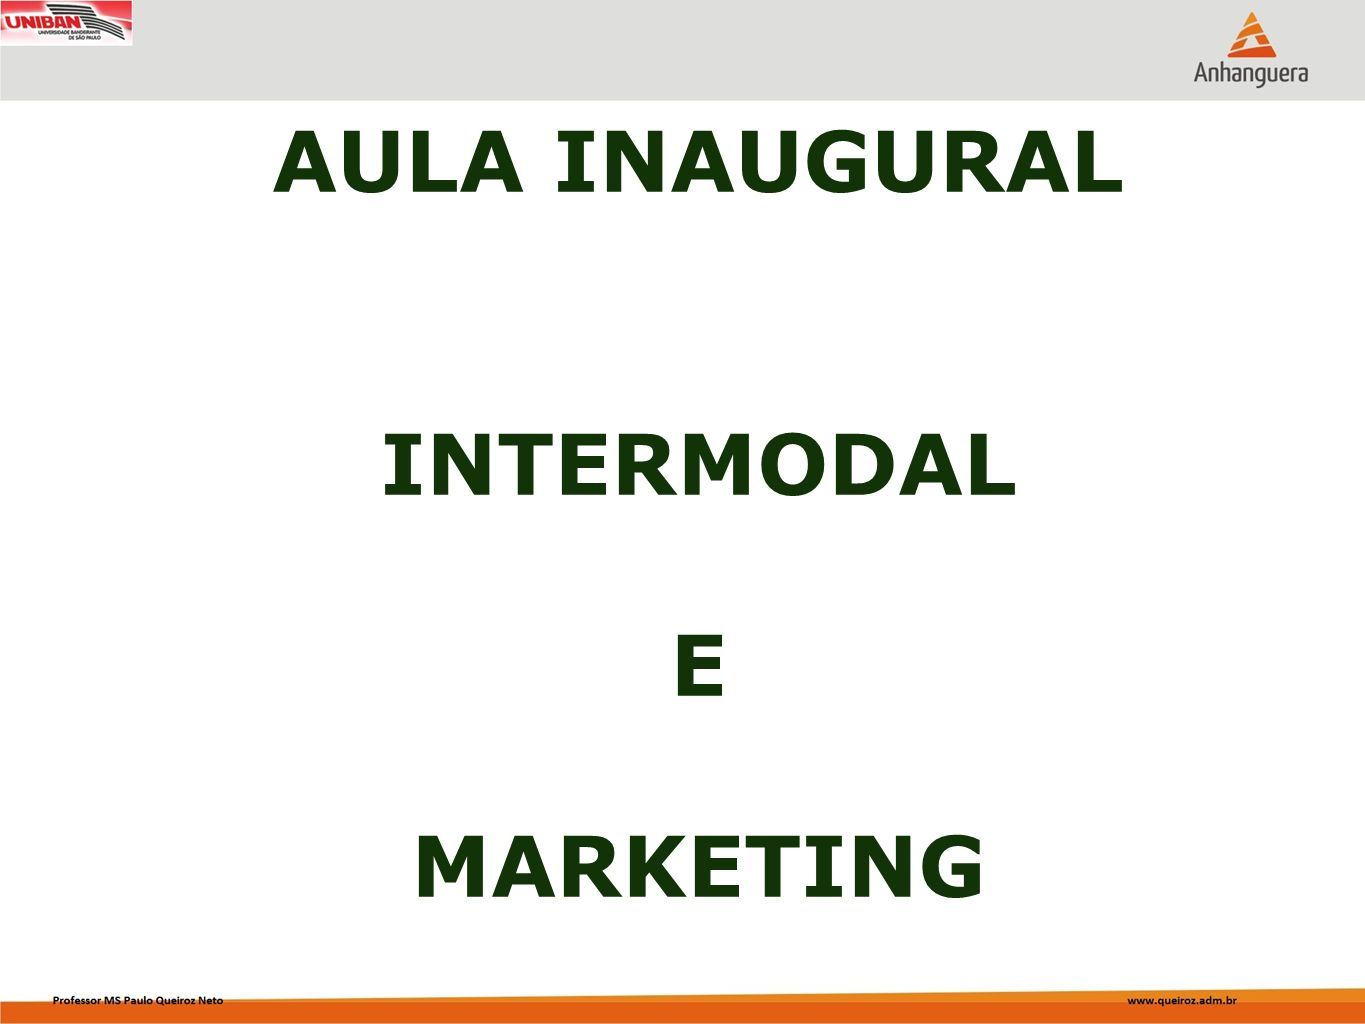 AULA INAUGURAL INTERMODAL E MARKETING